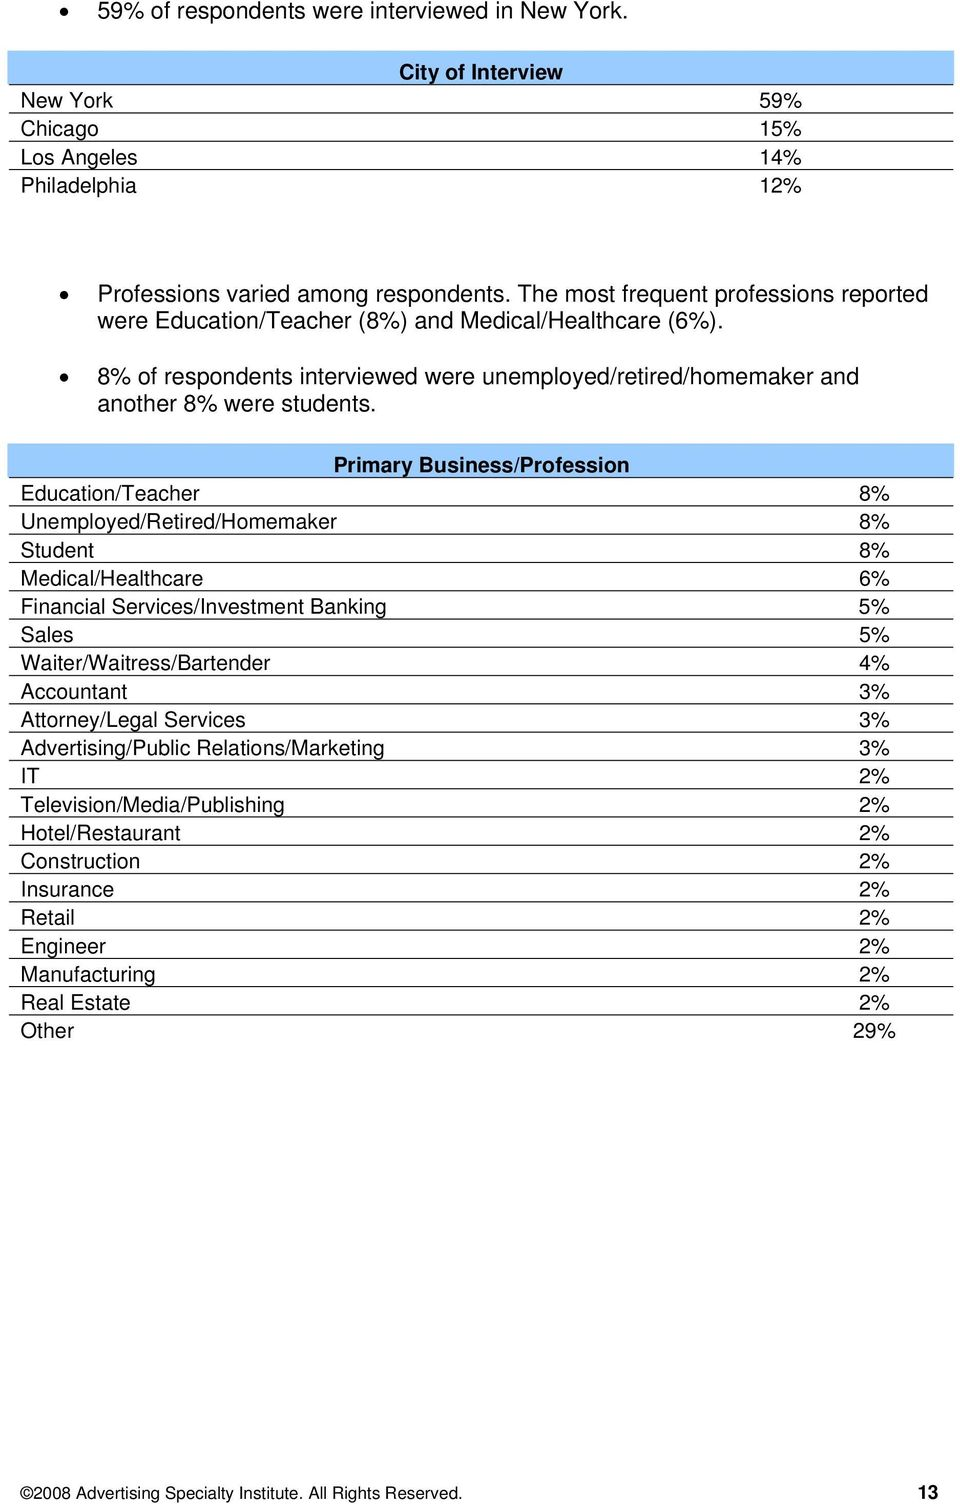 Primary Business/Profession Education/Teacher 8% Unemployed/Retired/Homemaker 8% Student 8% Medical/Healthcare 6% Financial Services/Investment Banking 5% Sales 5% Waiter/Waitress/Bartender 4%